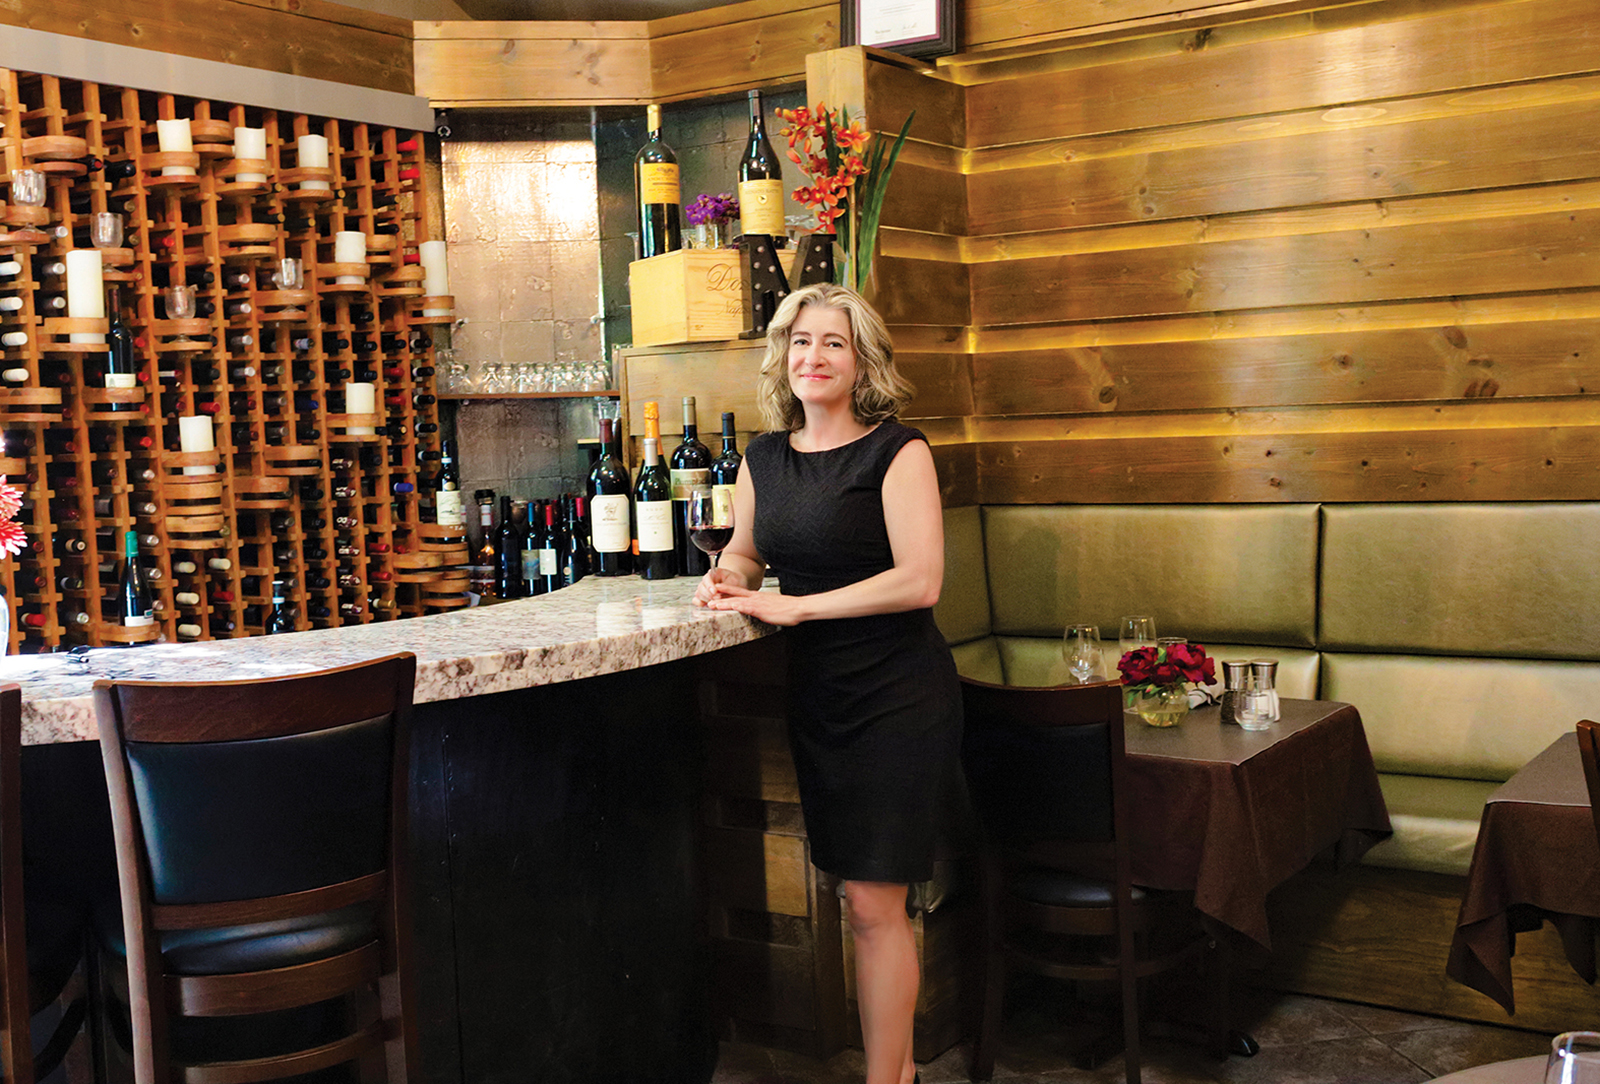 highlands nc dining meritage andrea